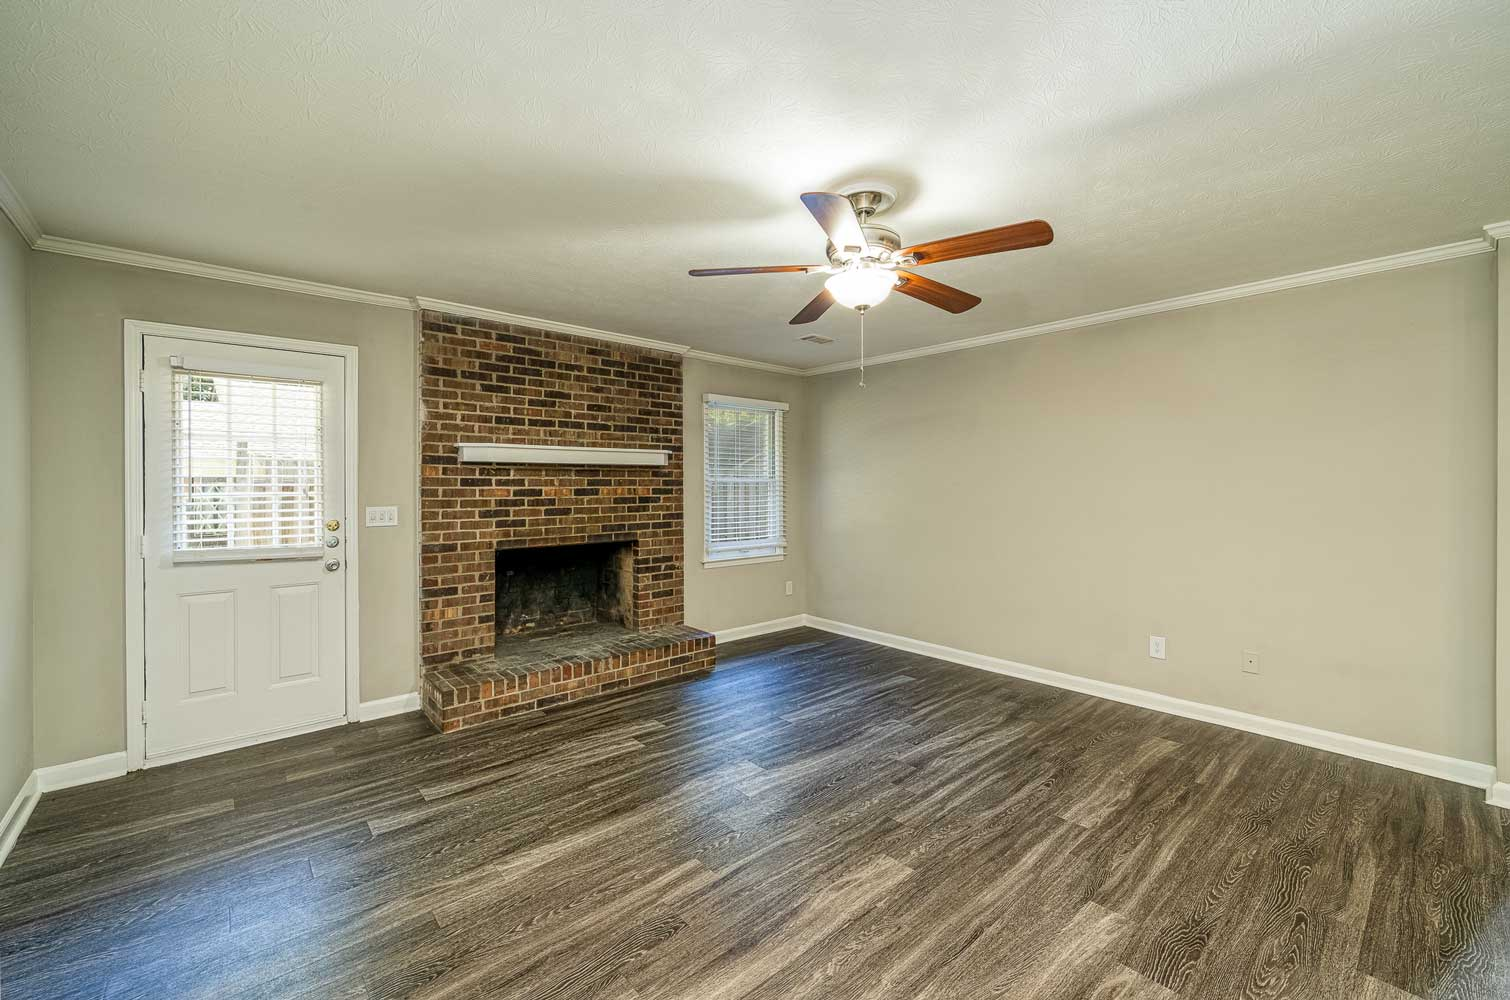 Wood Flooring at Tall Oaks Apartments and Villas in Conyers, GA